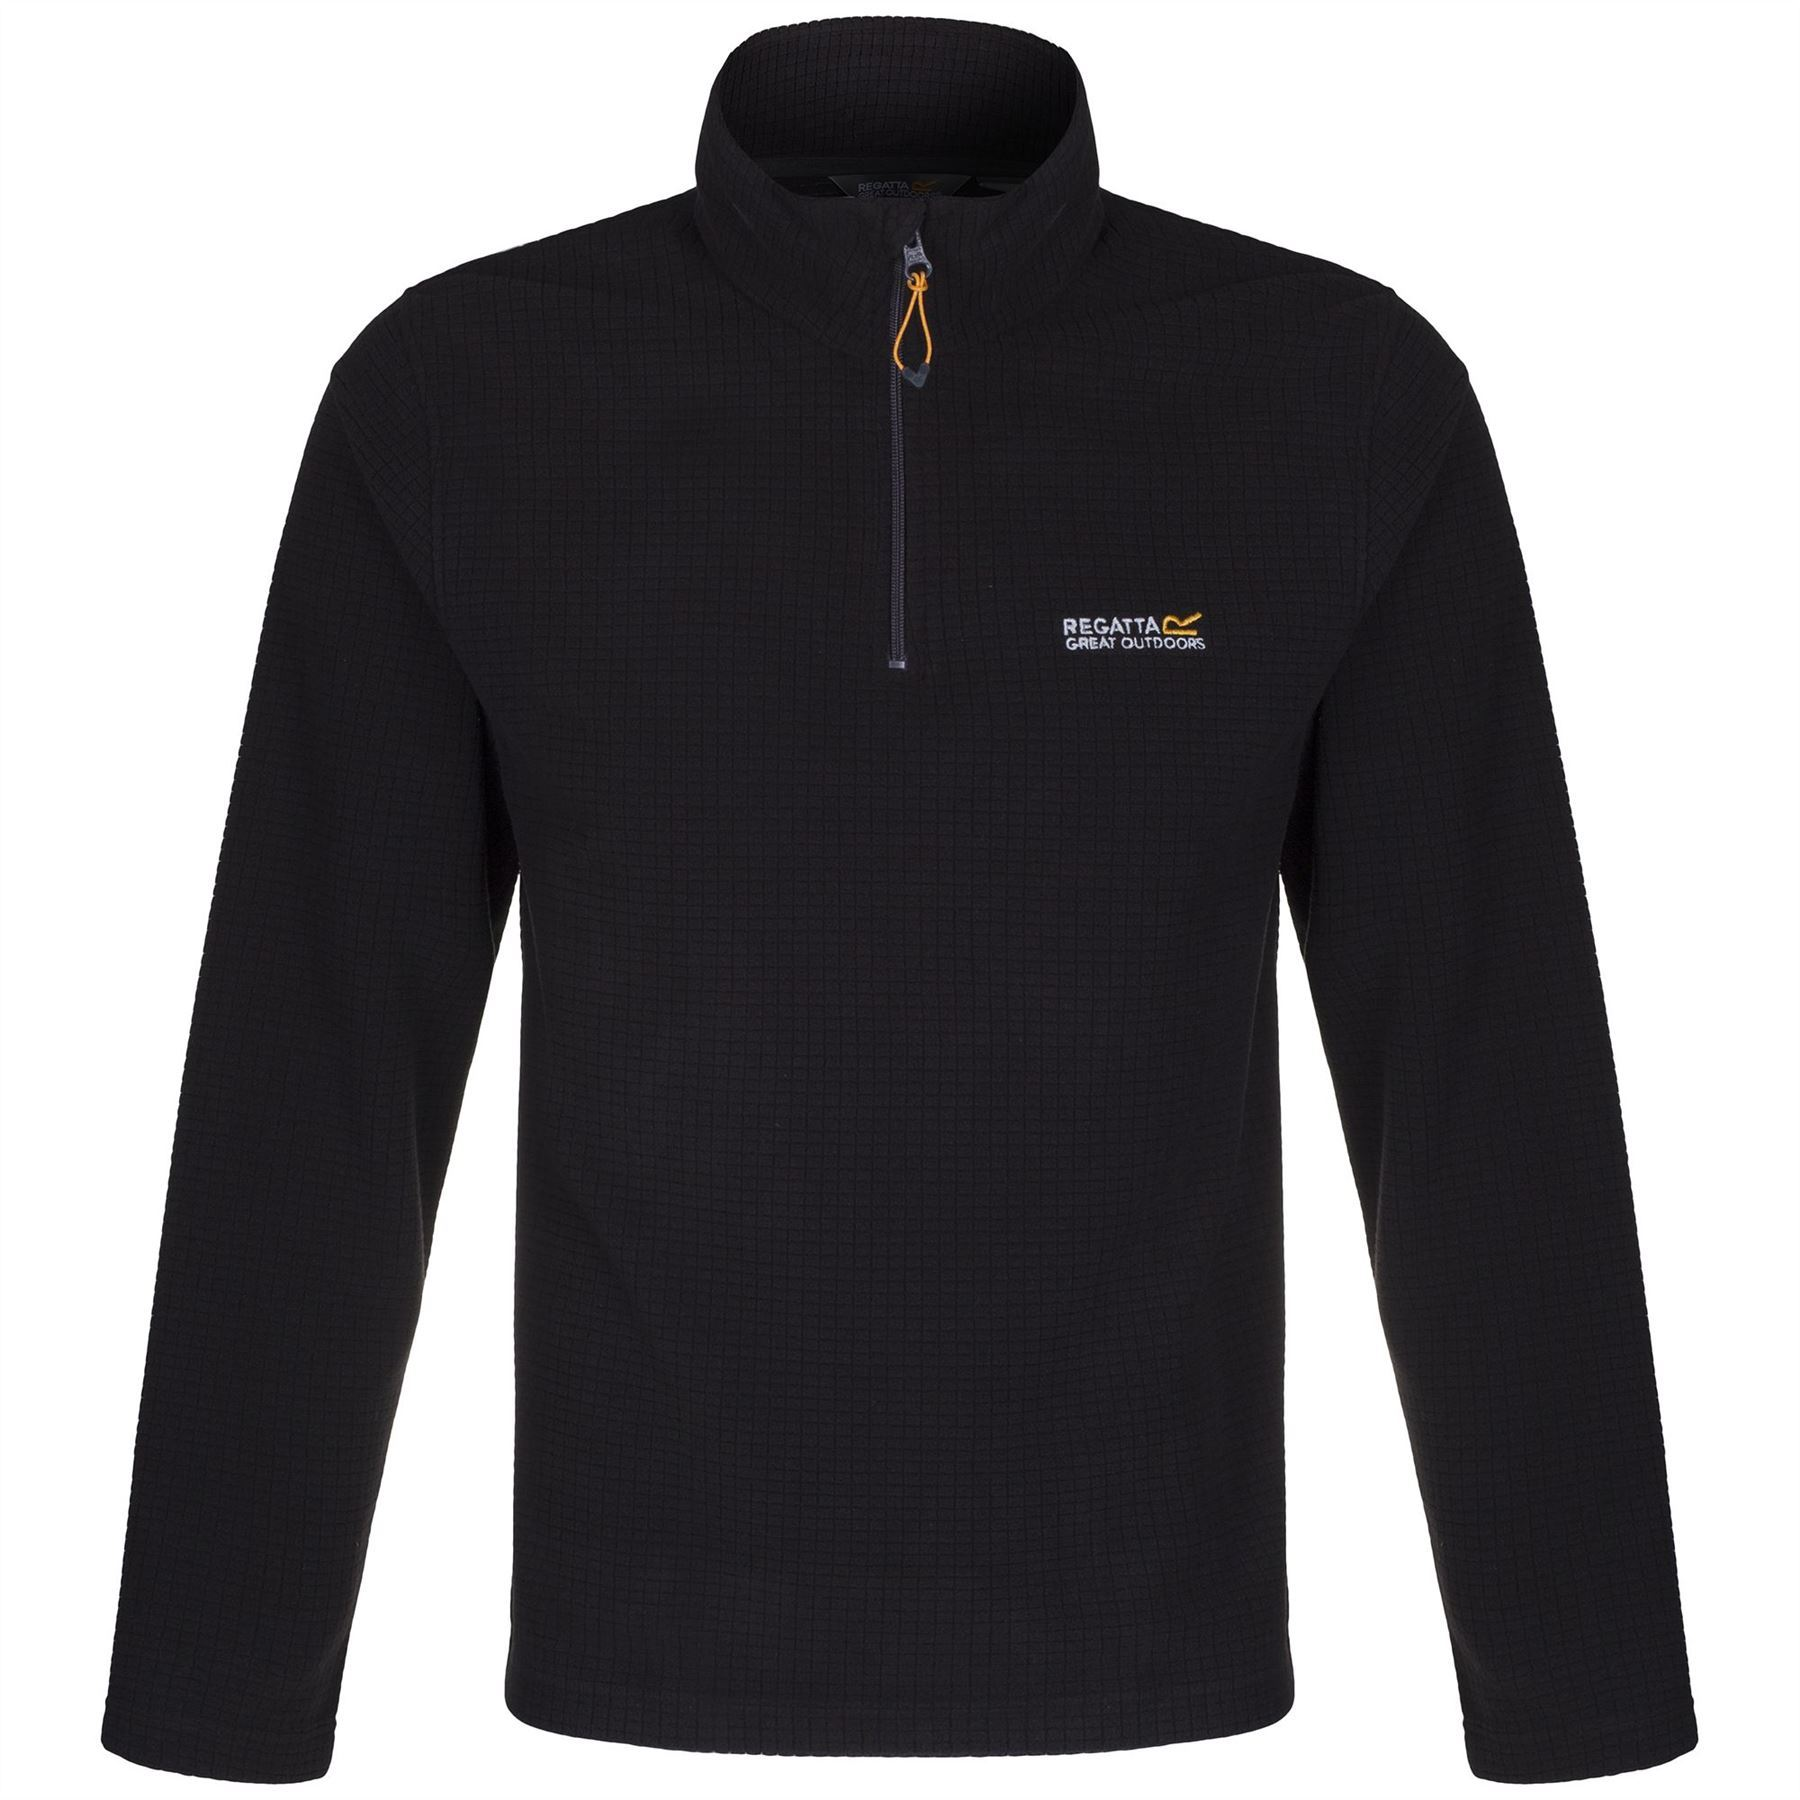 Regatta-Elgon-para-hombre-Half-Zip-Fleece-Pullover-Jumper-Top-RMA236 miniatura 7